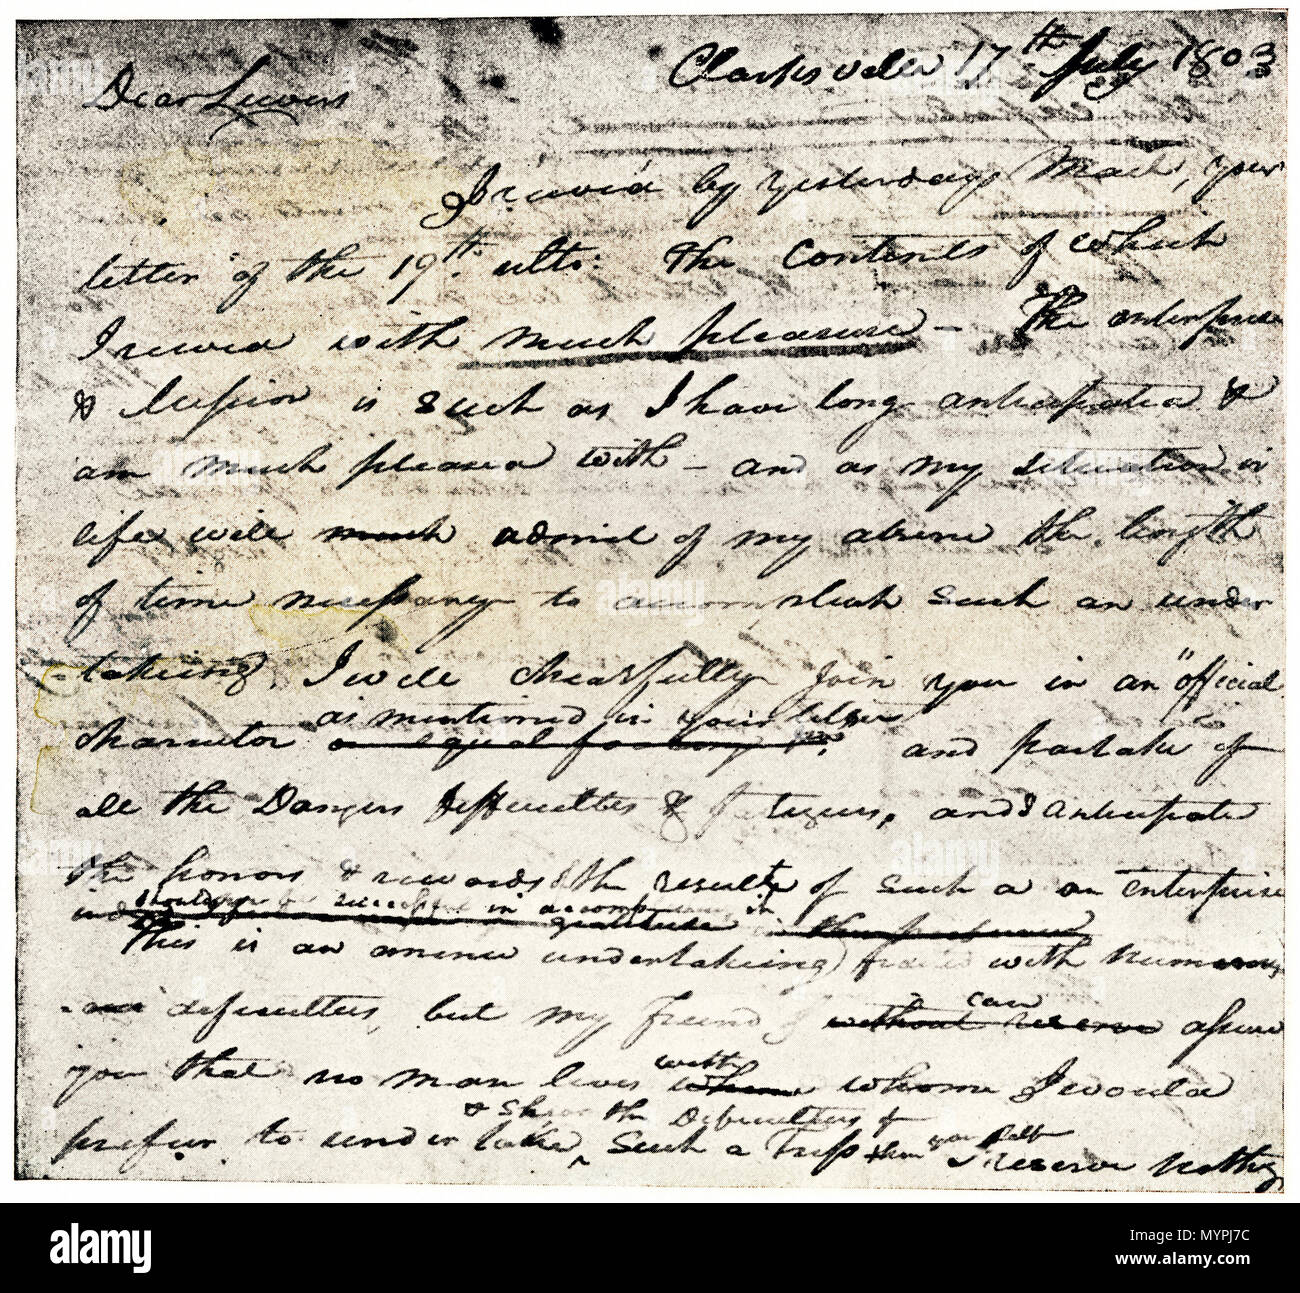 William Clark's letter accepting Lewis's invitation to join the Corps of Discovery expedition, dated Clarksville 1803. Printed halftone with wash - Stock Image